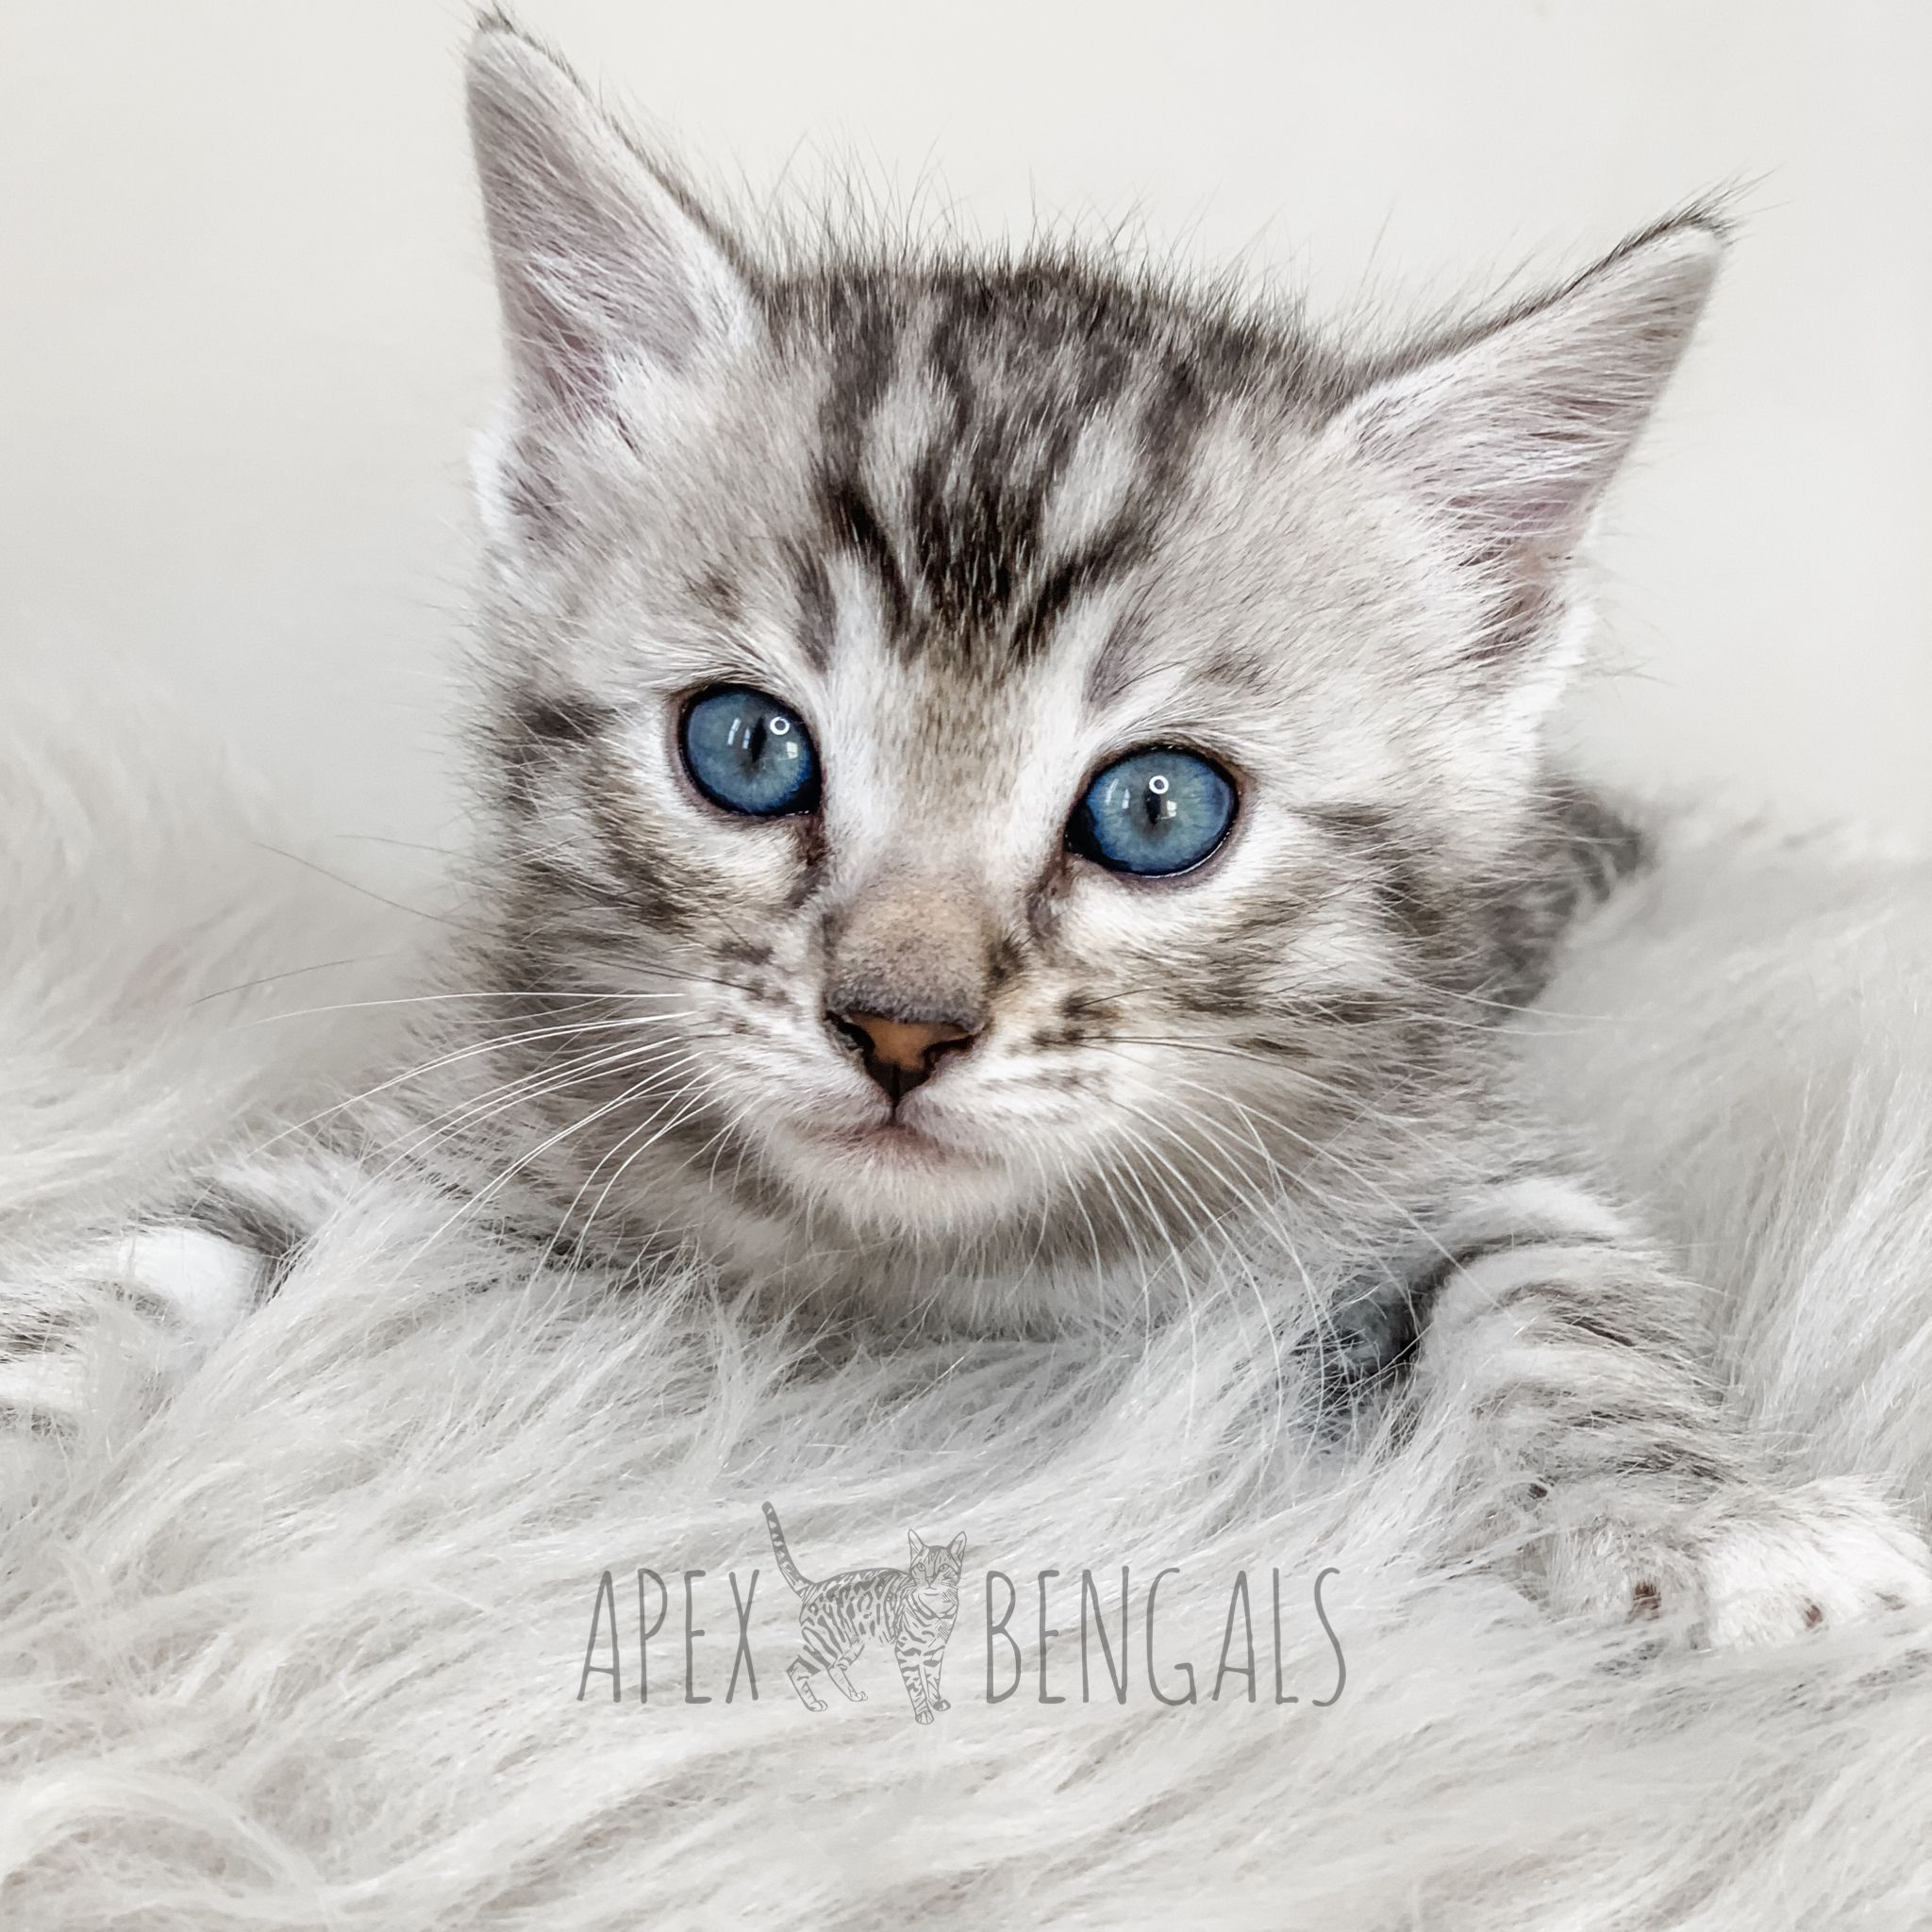 Silver Bengal Kitten from Apexbengals apexbengals